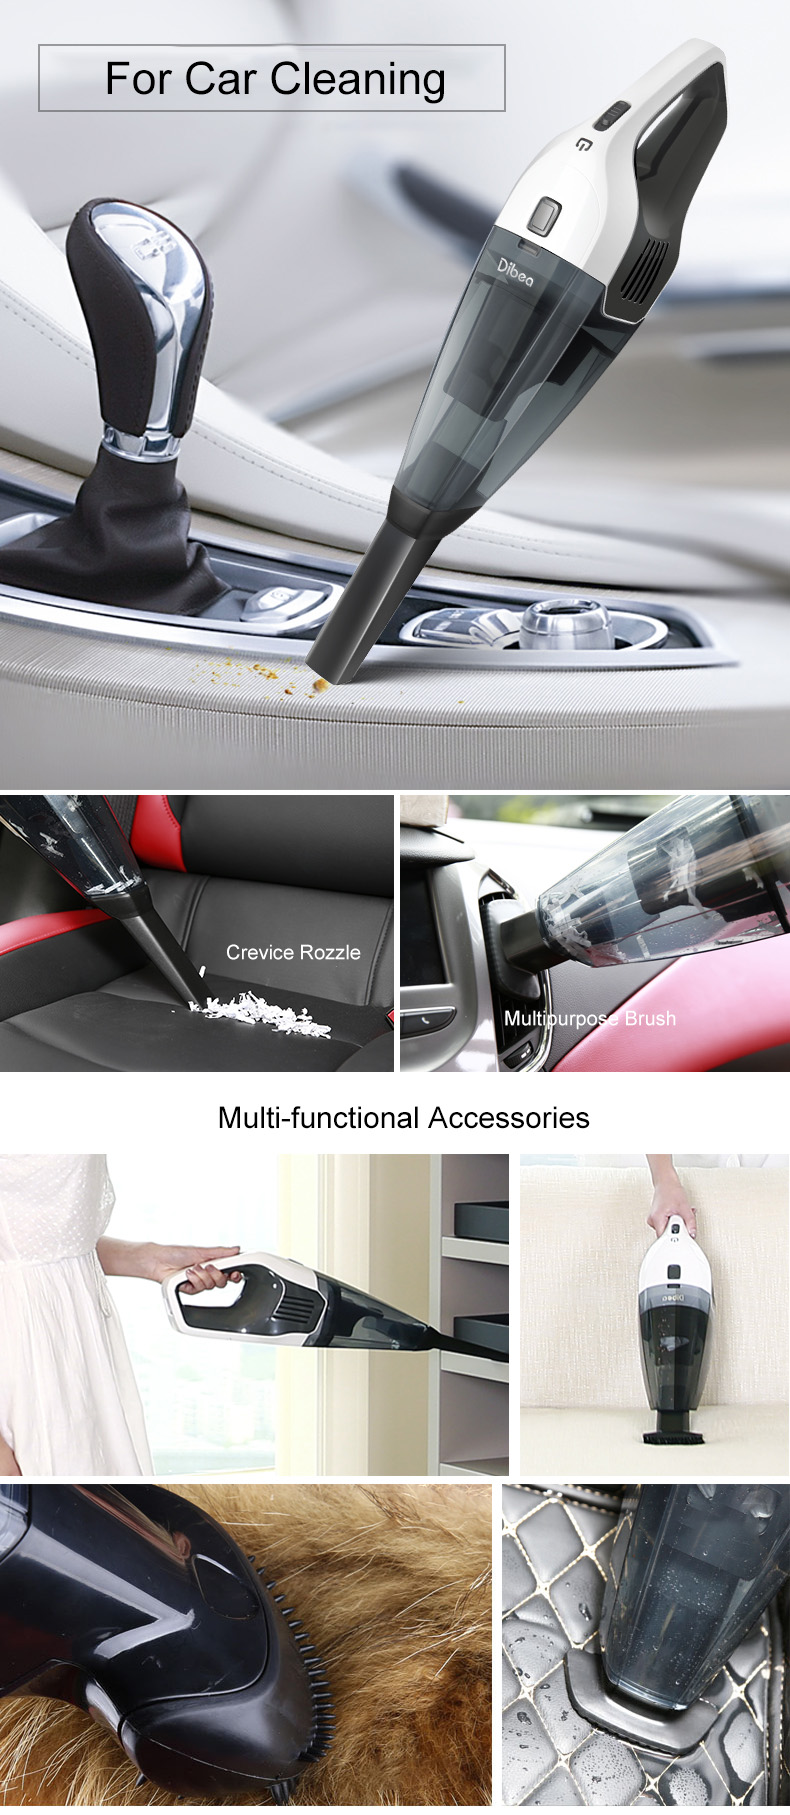 Dibea LW-200 Hand-held Cordless Vacuum Cleaner Powerful Portable Pet Hair Dust Busters for Home and Car Cleaning